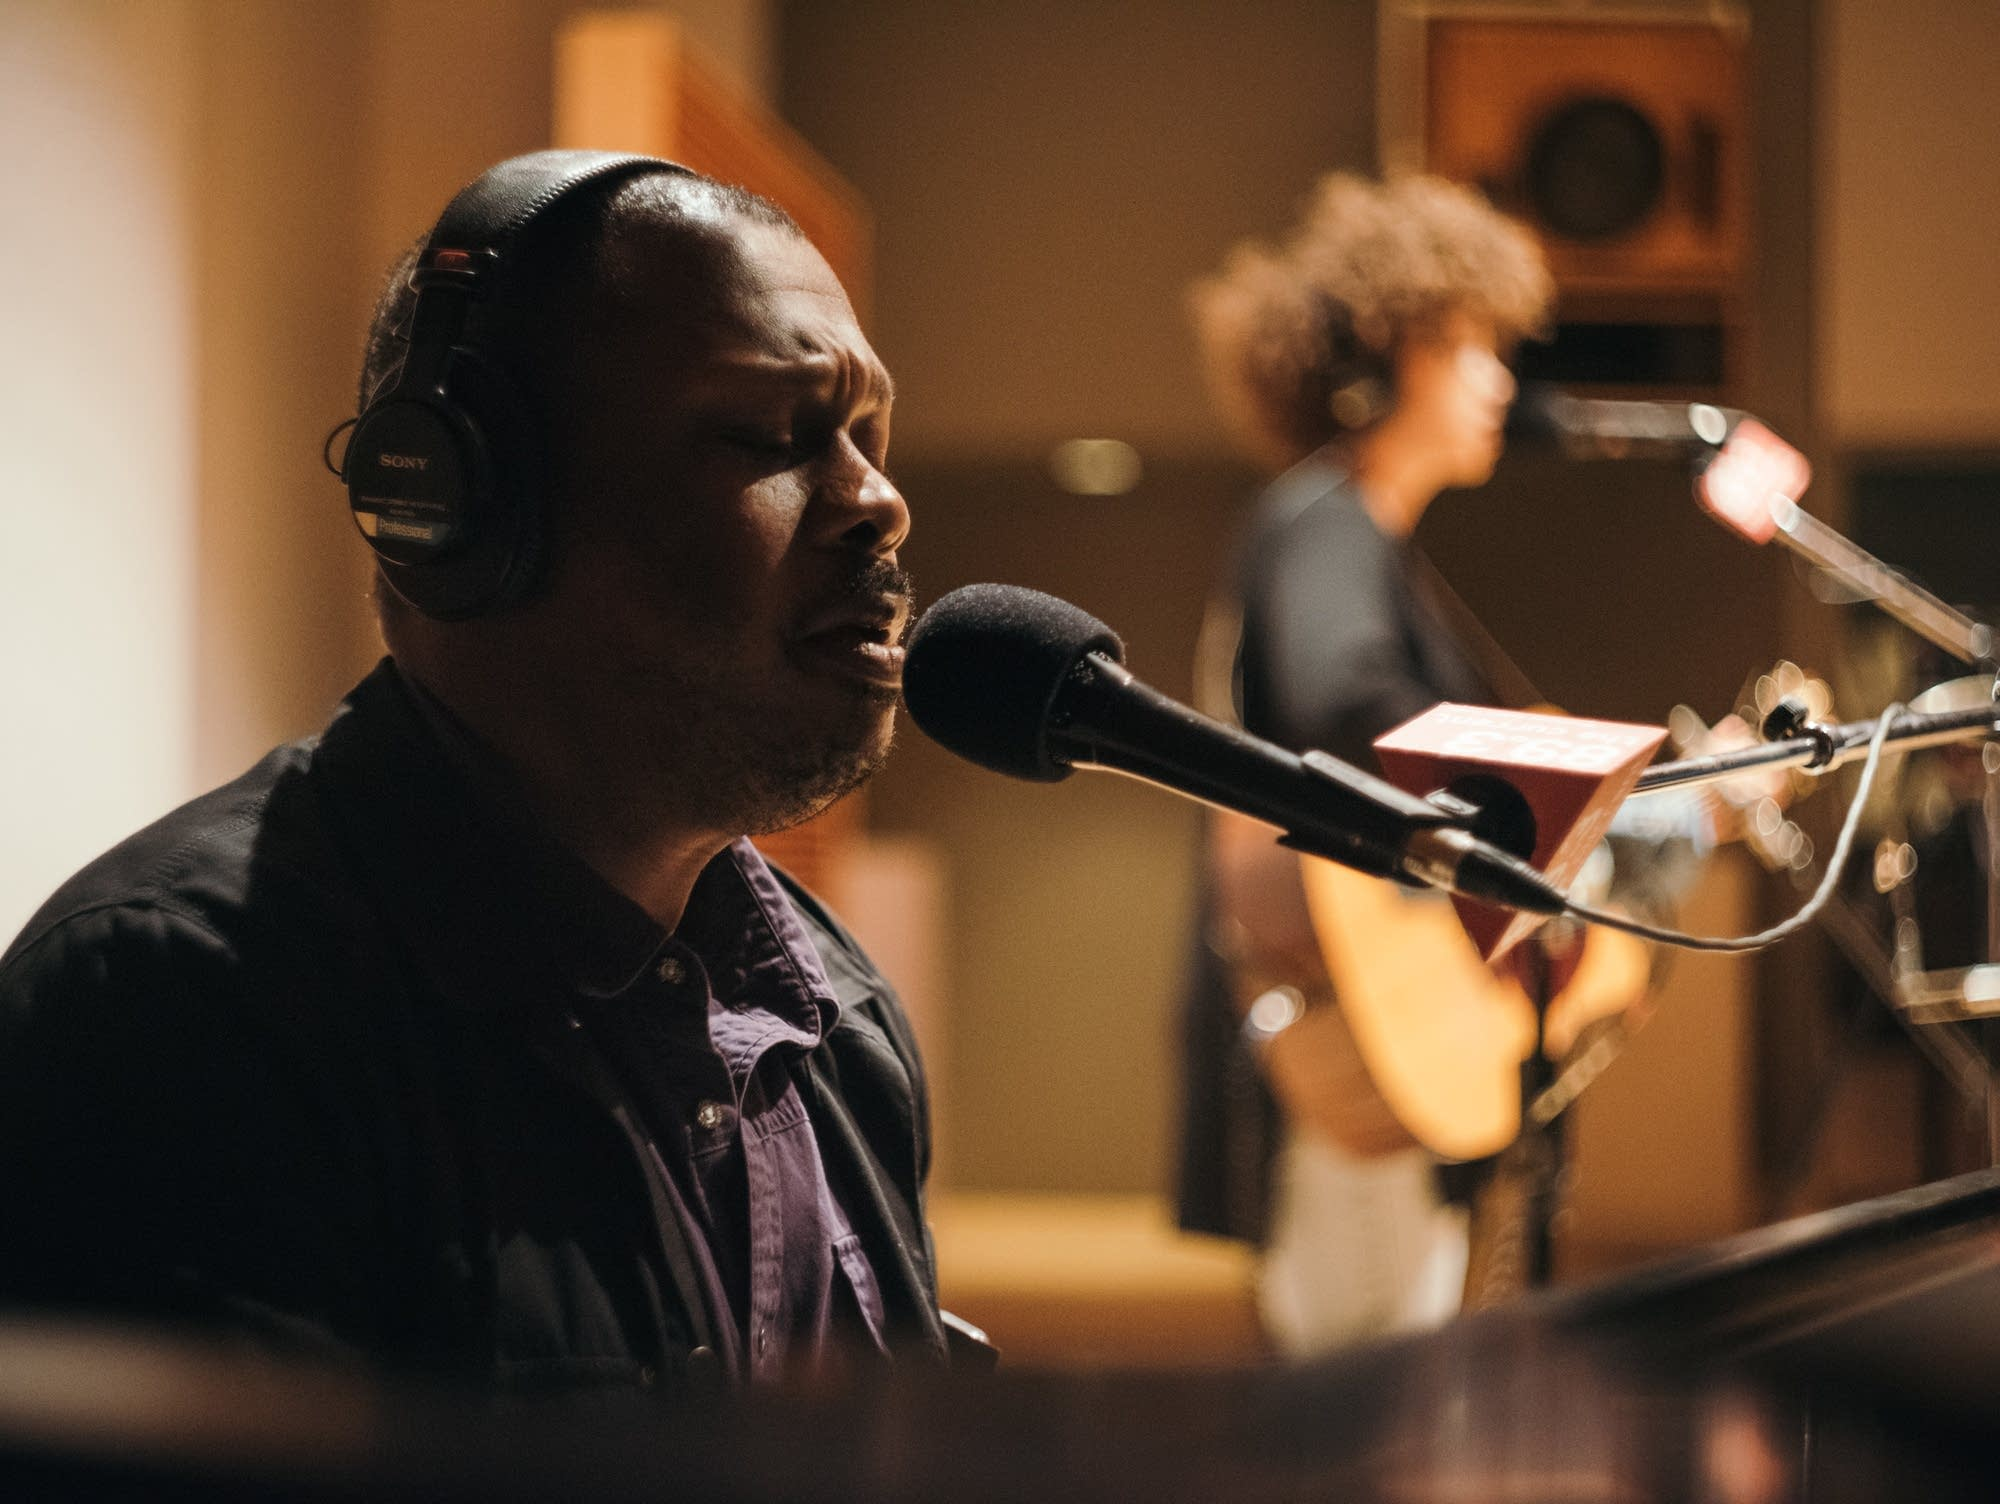 DeVon Gray performs in The Current studio with Chastity Brown